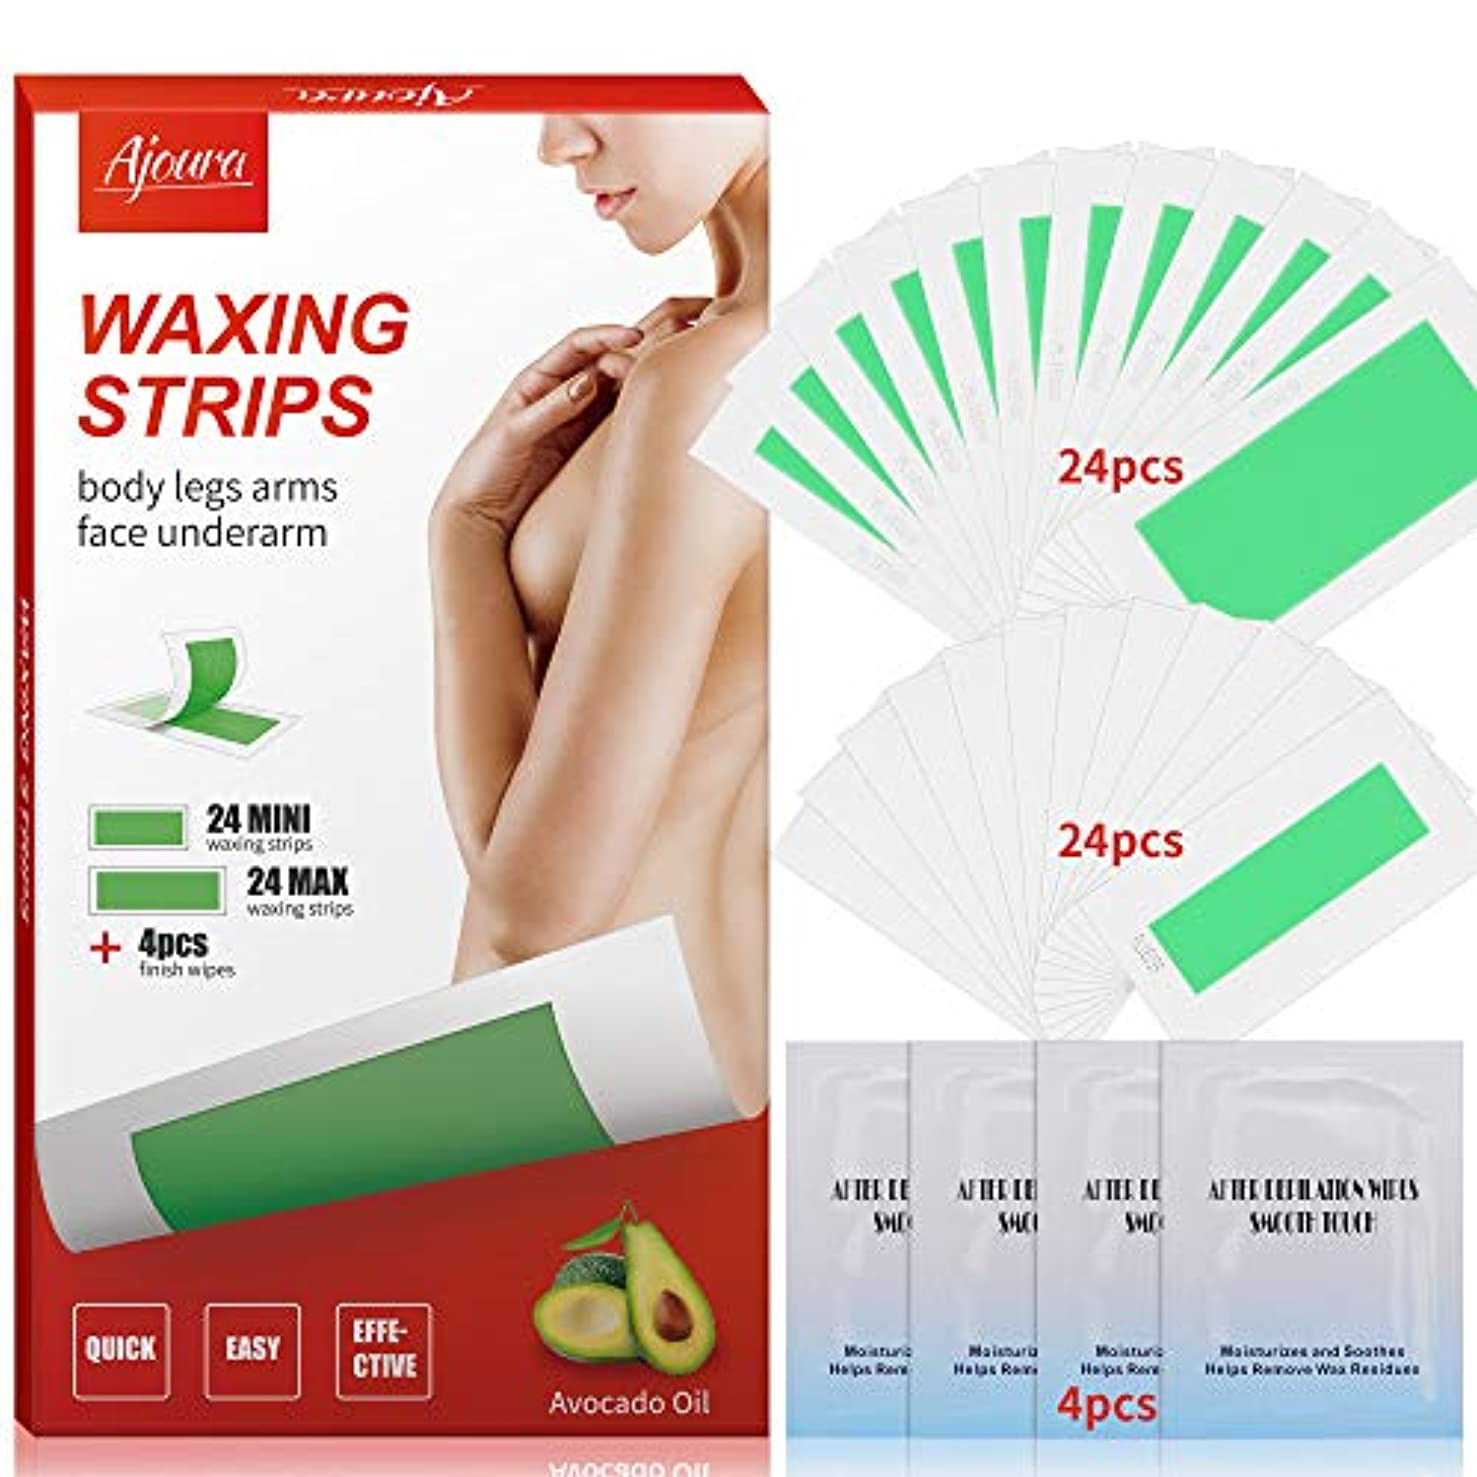 Wax Strips, Ajoura Hair Removal Strips for Face Leg Eyebrow Bikini Brazilian Underarm Women men, Waxing Strips with 48 Count Double Size Cold Wax Strips & 4 Post Care Wipes